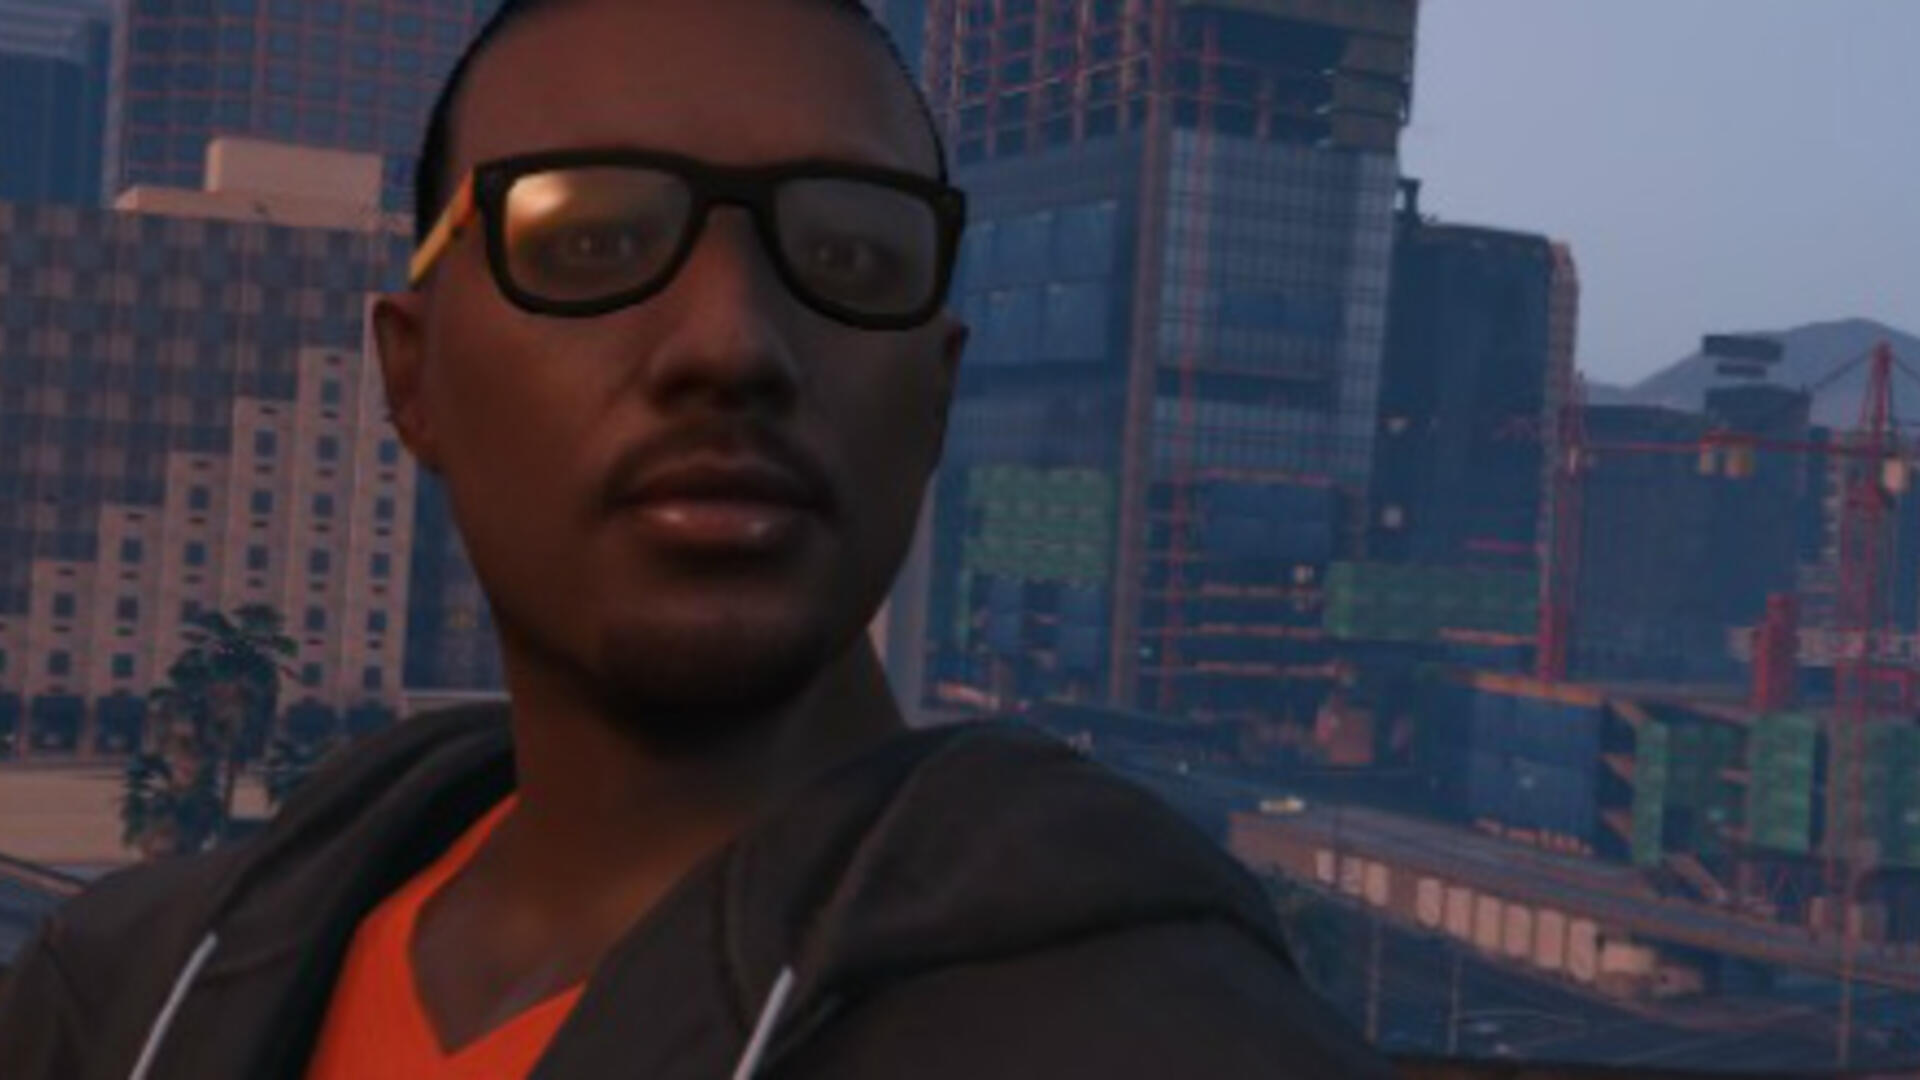 Grand Theft Auto V PS4 Review: The Trevor's in The Details